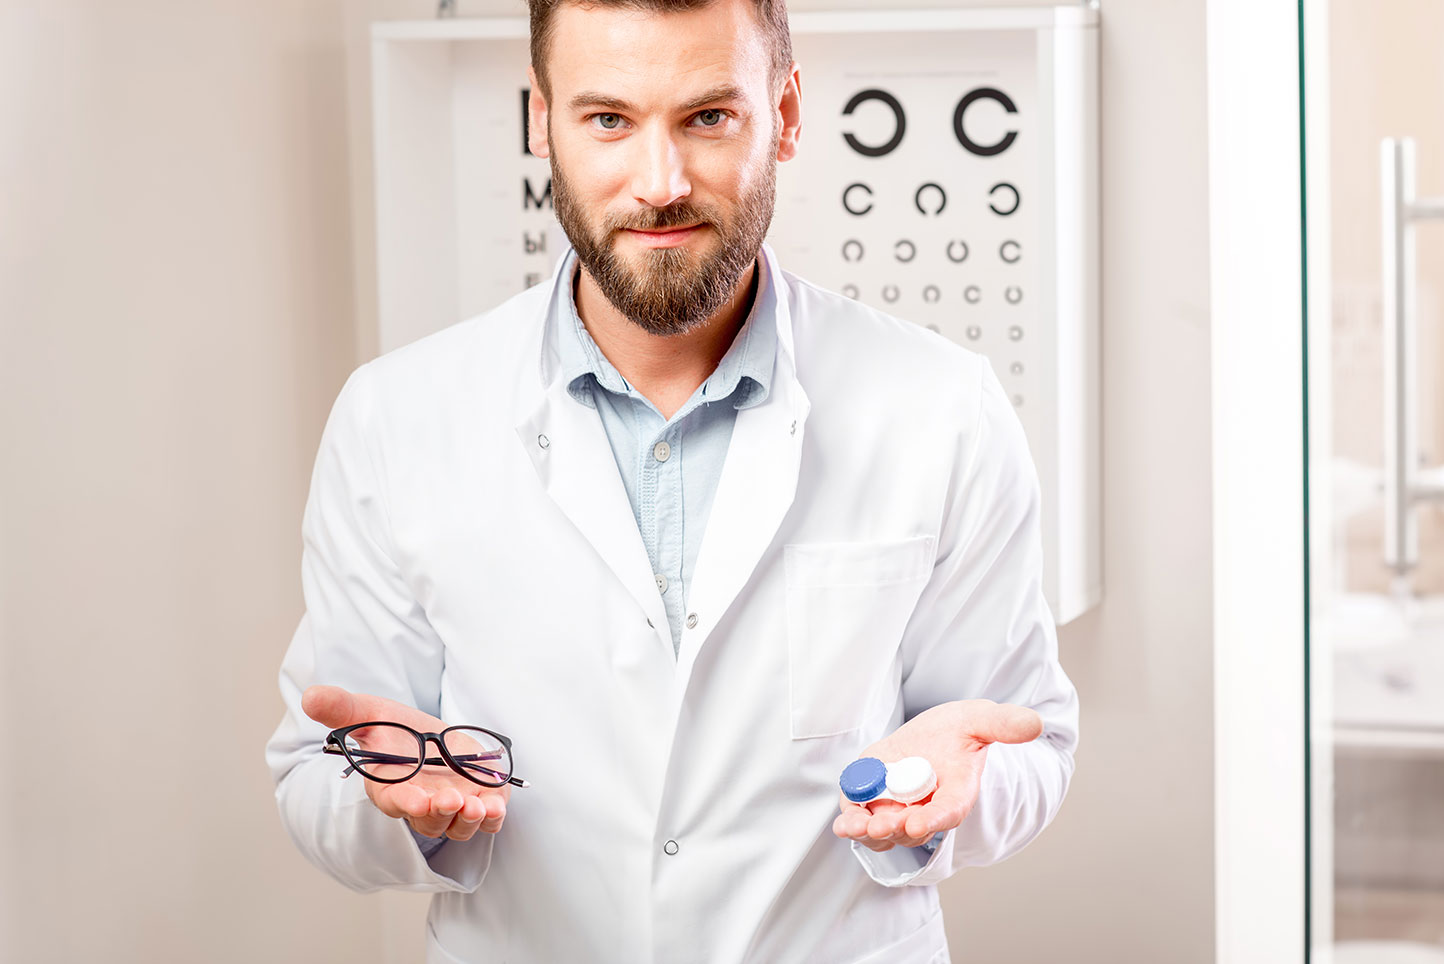 National Contact Lens Examiners (NCLE) Exam